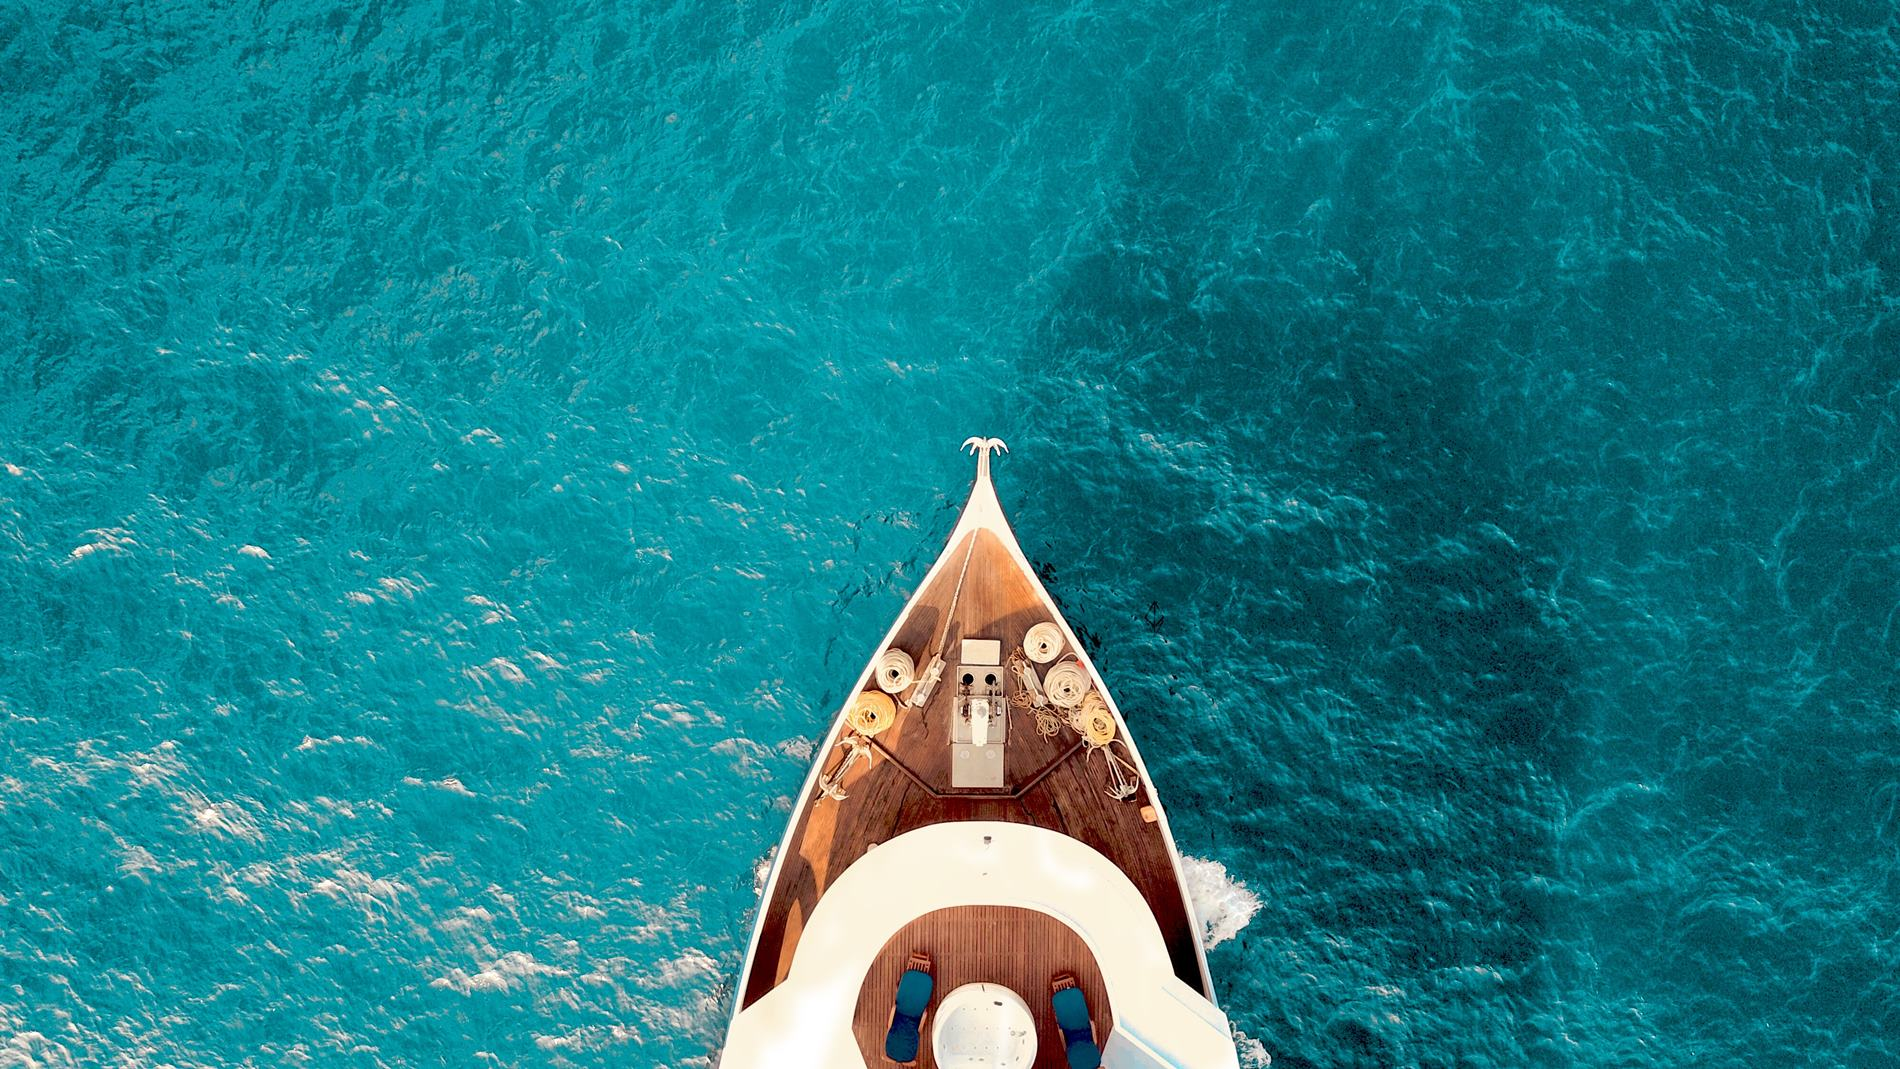 SEO Strategy For Yacht Business: Organic vs. Paid